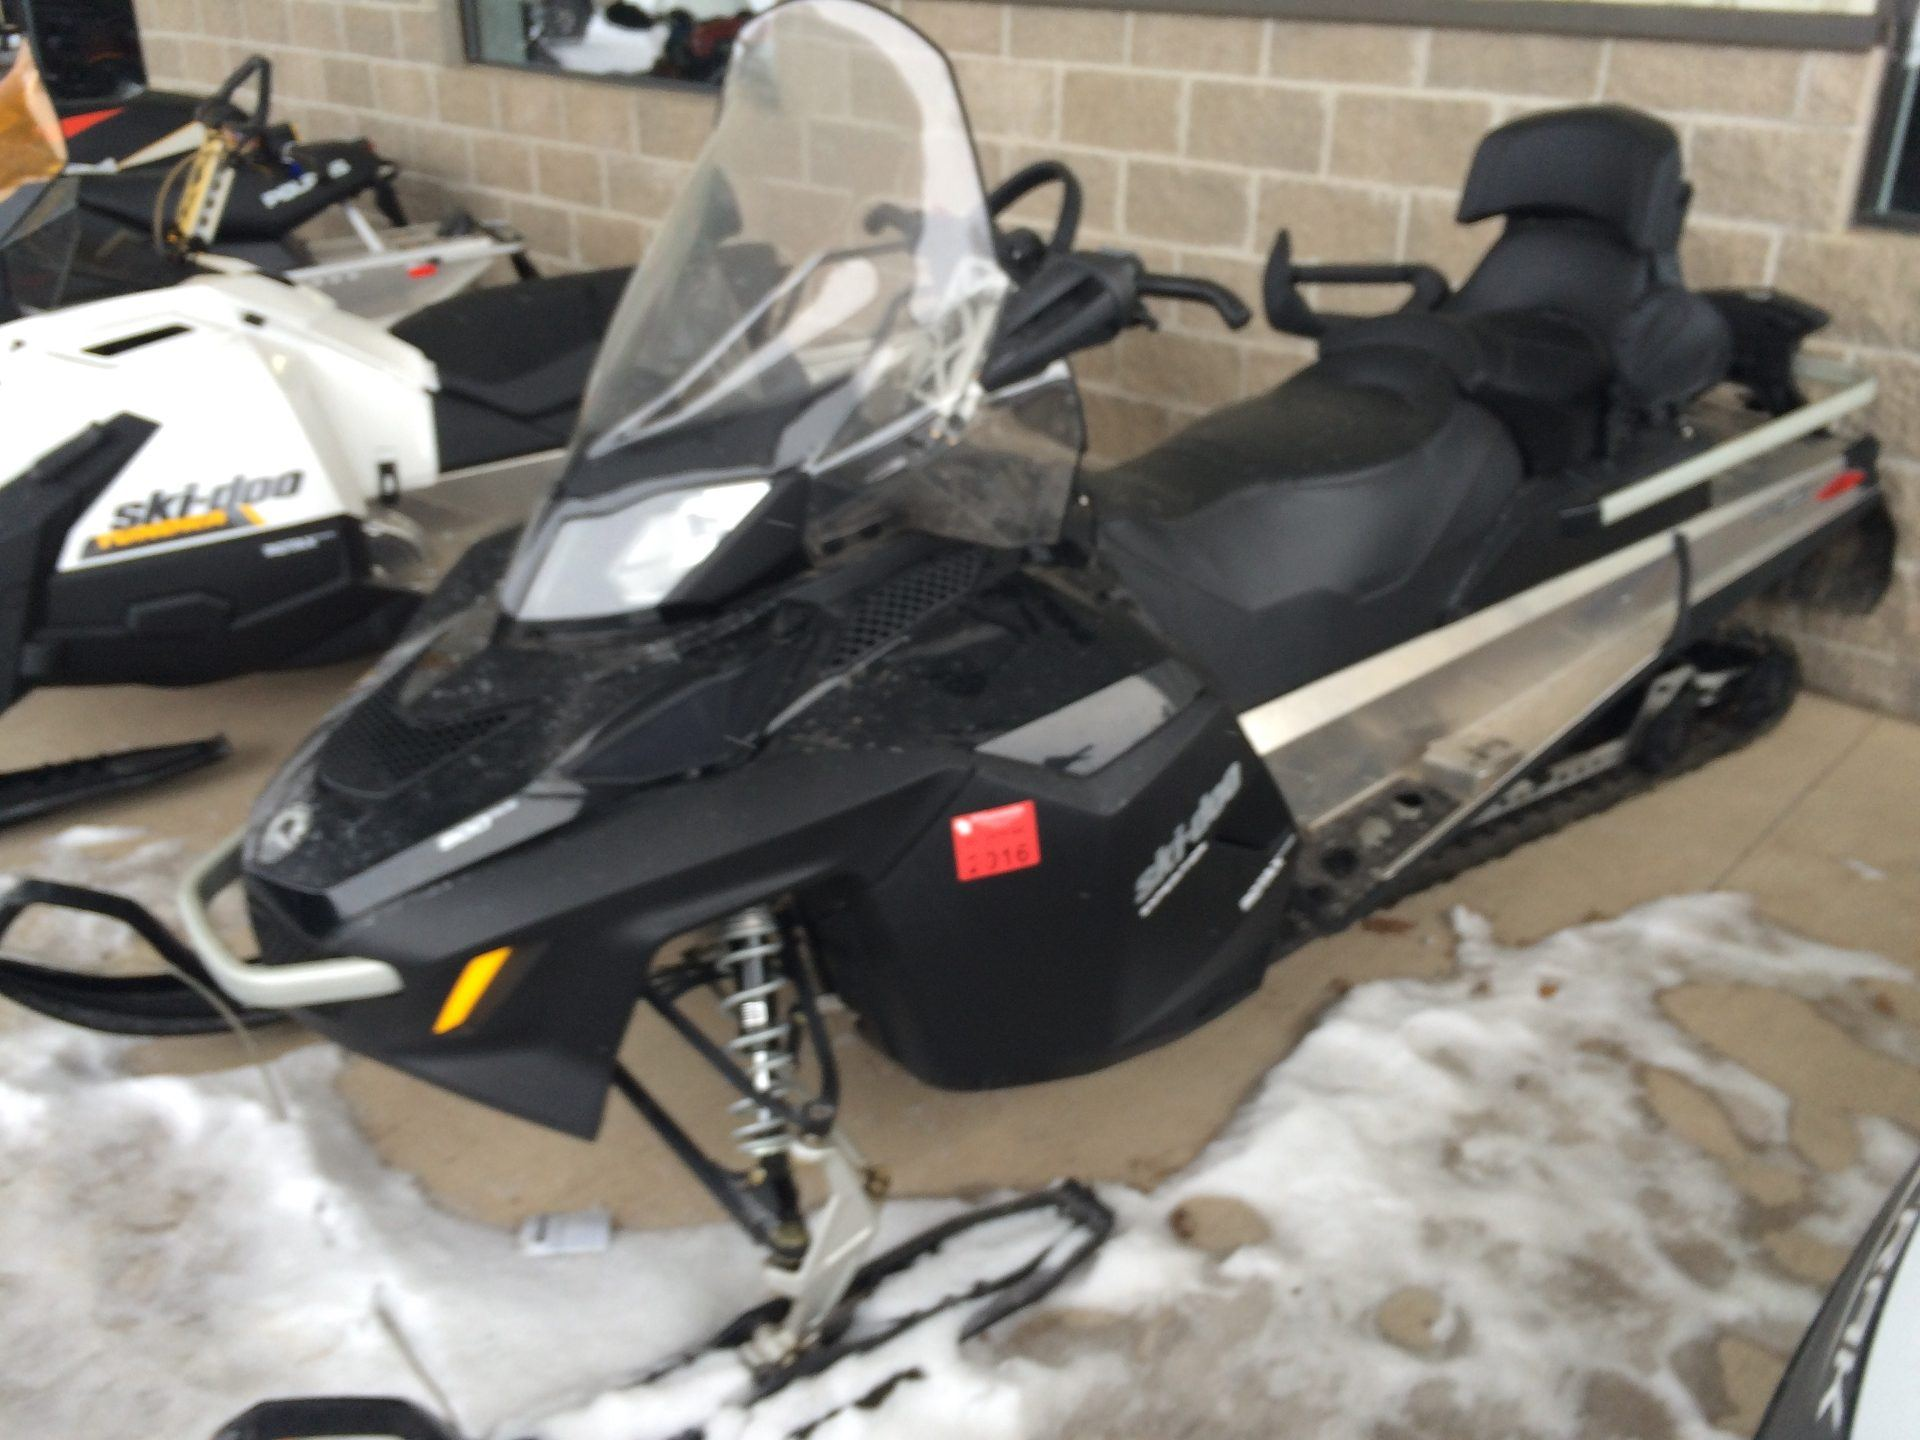 2015 Ski-Doo Expedition LE ACE 900 7